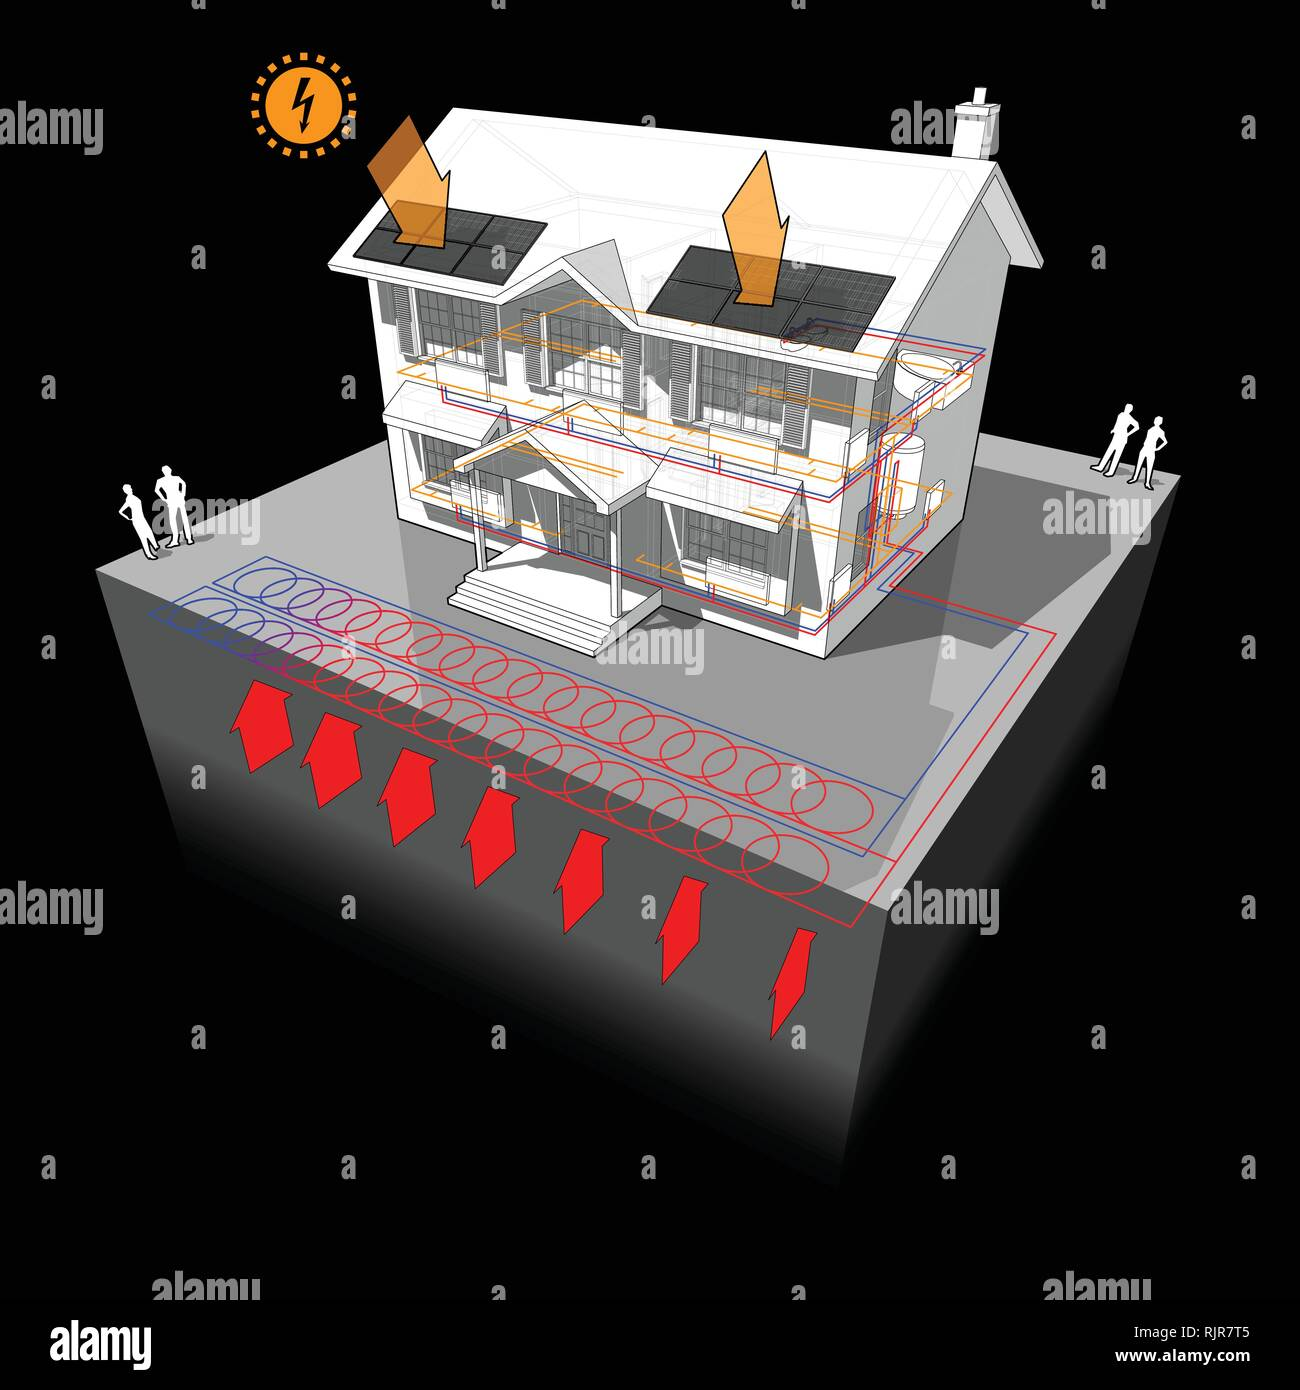 diagram of a classic colonial house with planar ground source heat pump as source of energy for heating and radiators and photovoltaic panels on the r - Stock Vector